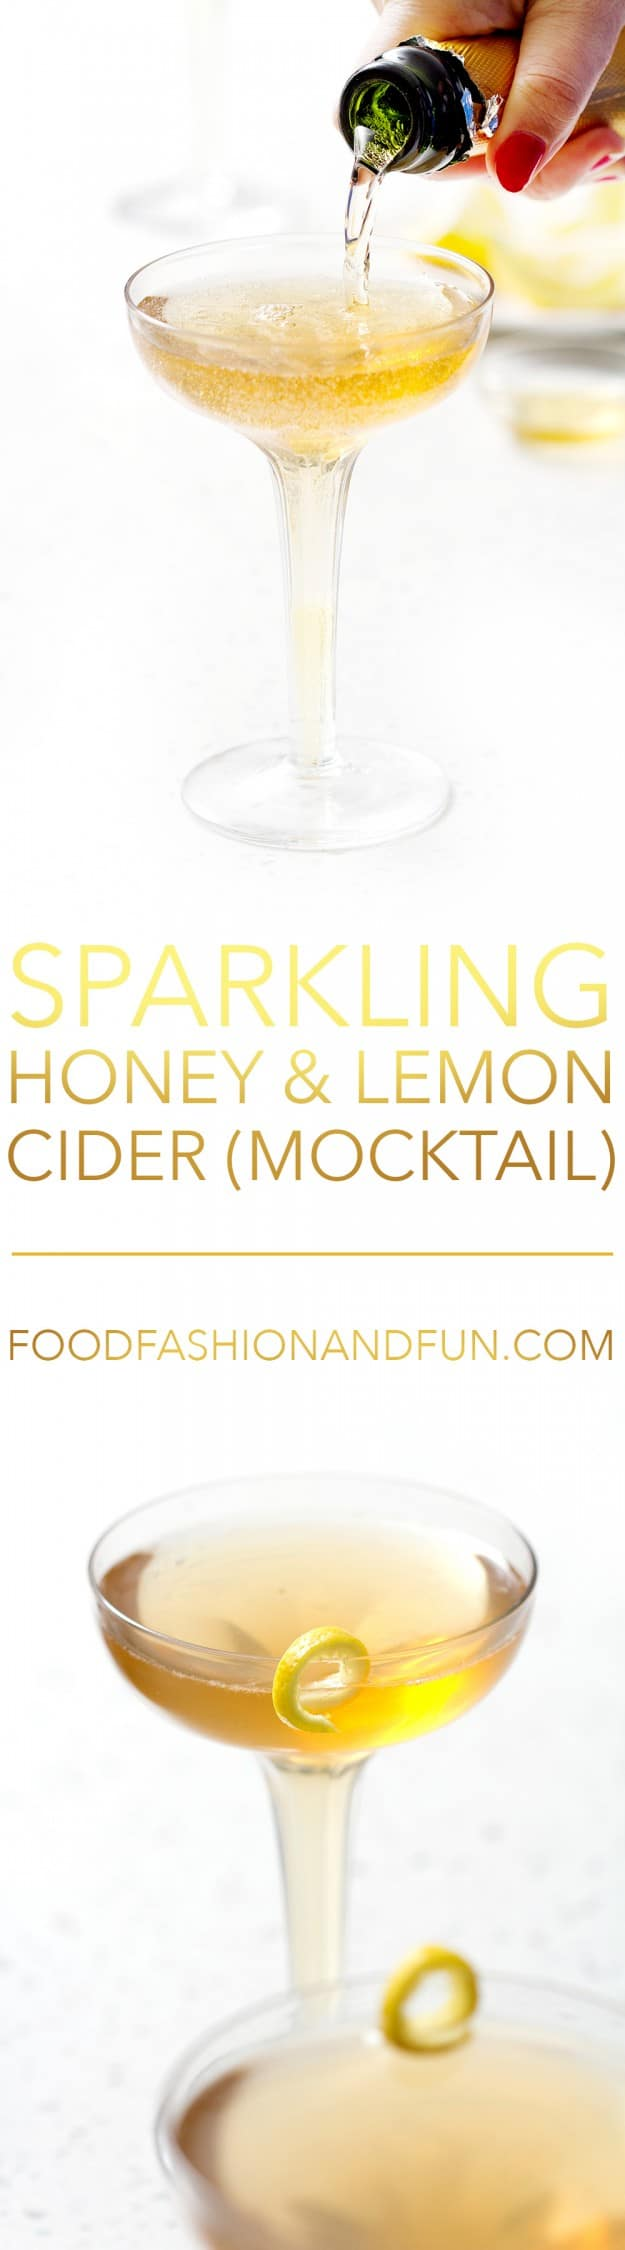 Sparkling Lemon and Honey Cider (mocktail)  Bon Aippetit